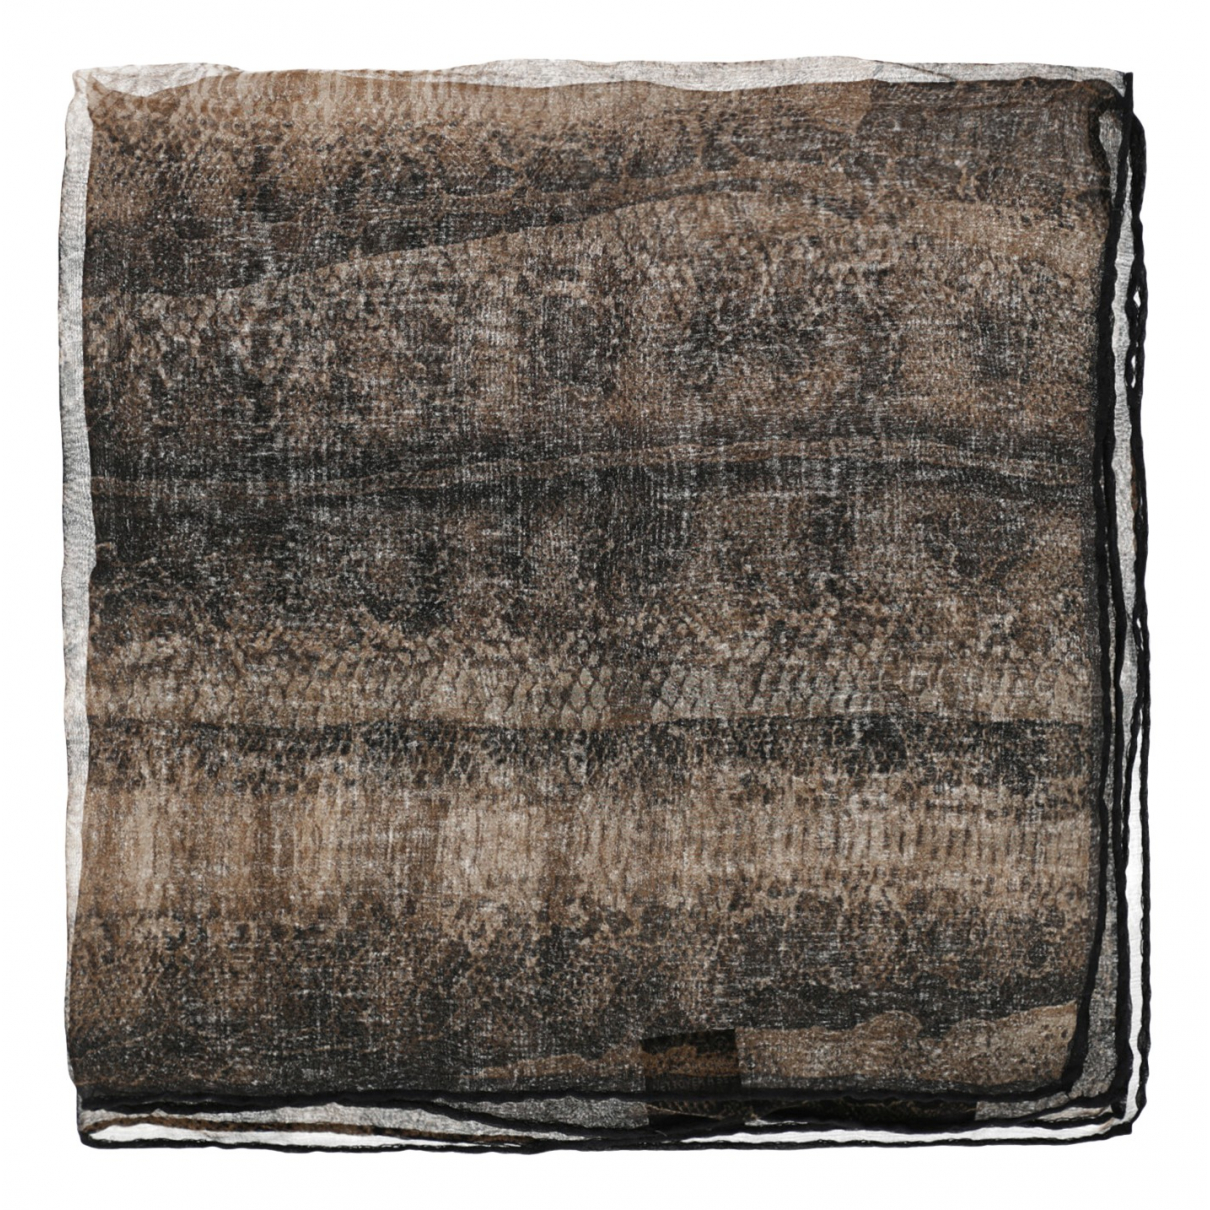 Roberto Cavalli \N Brown Silk scarf for Women \N